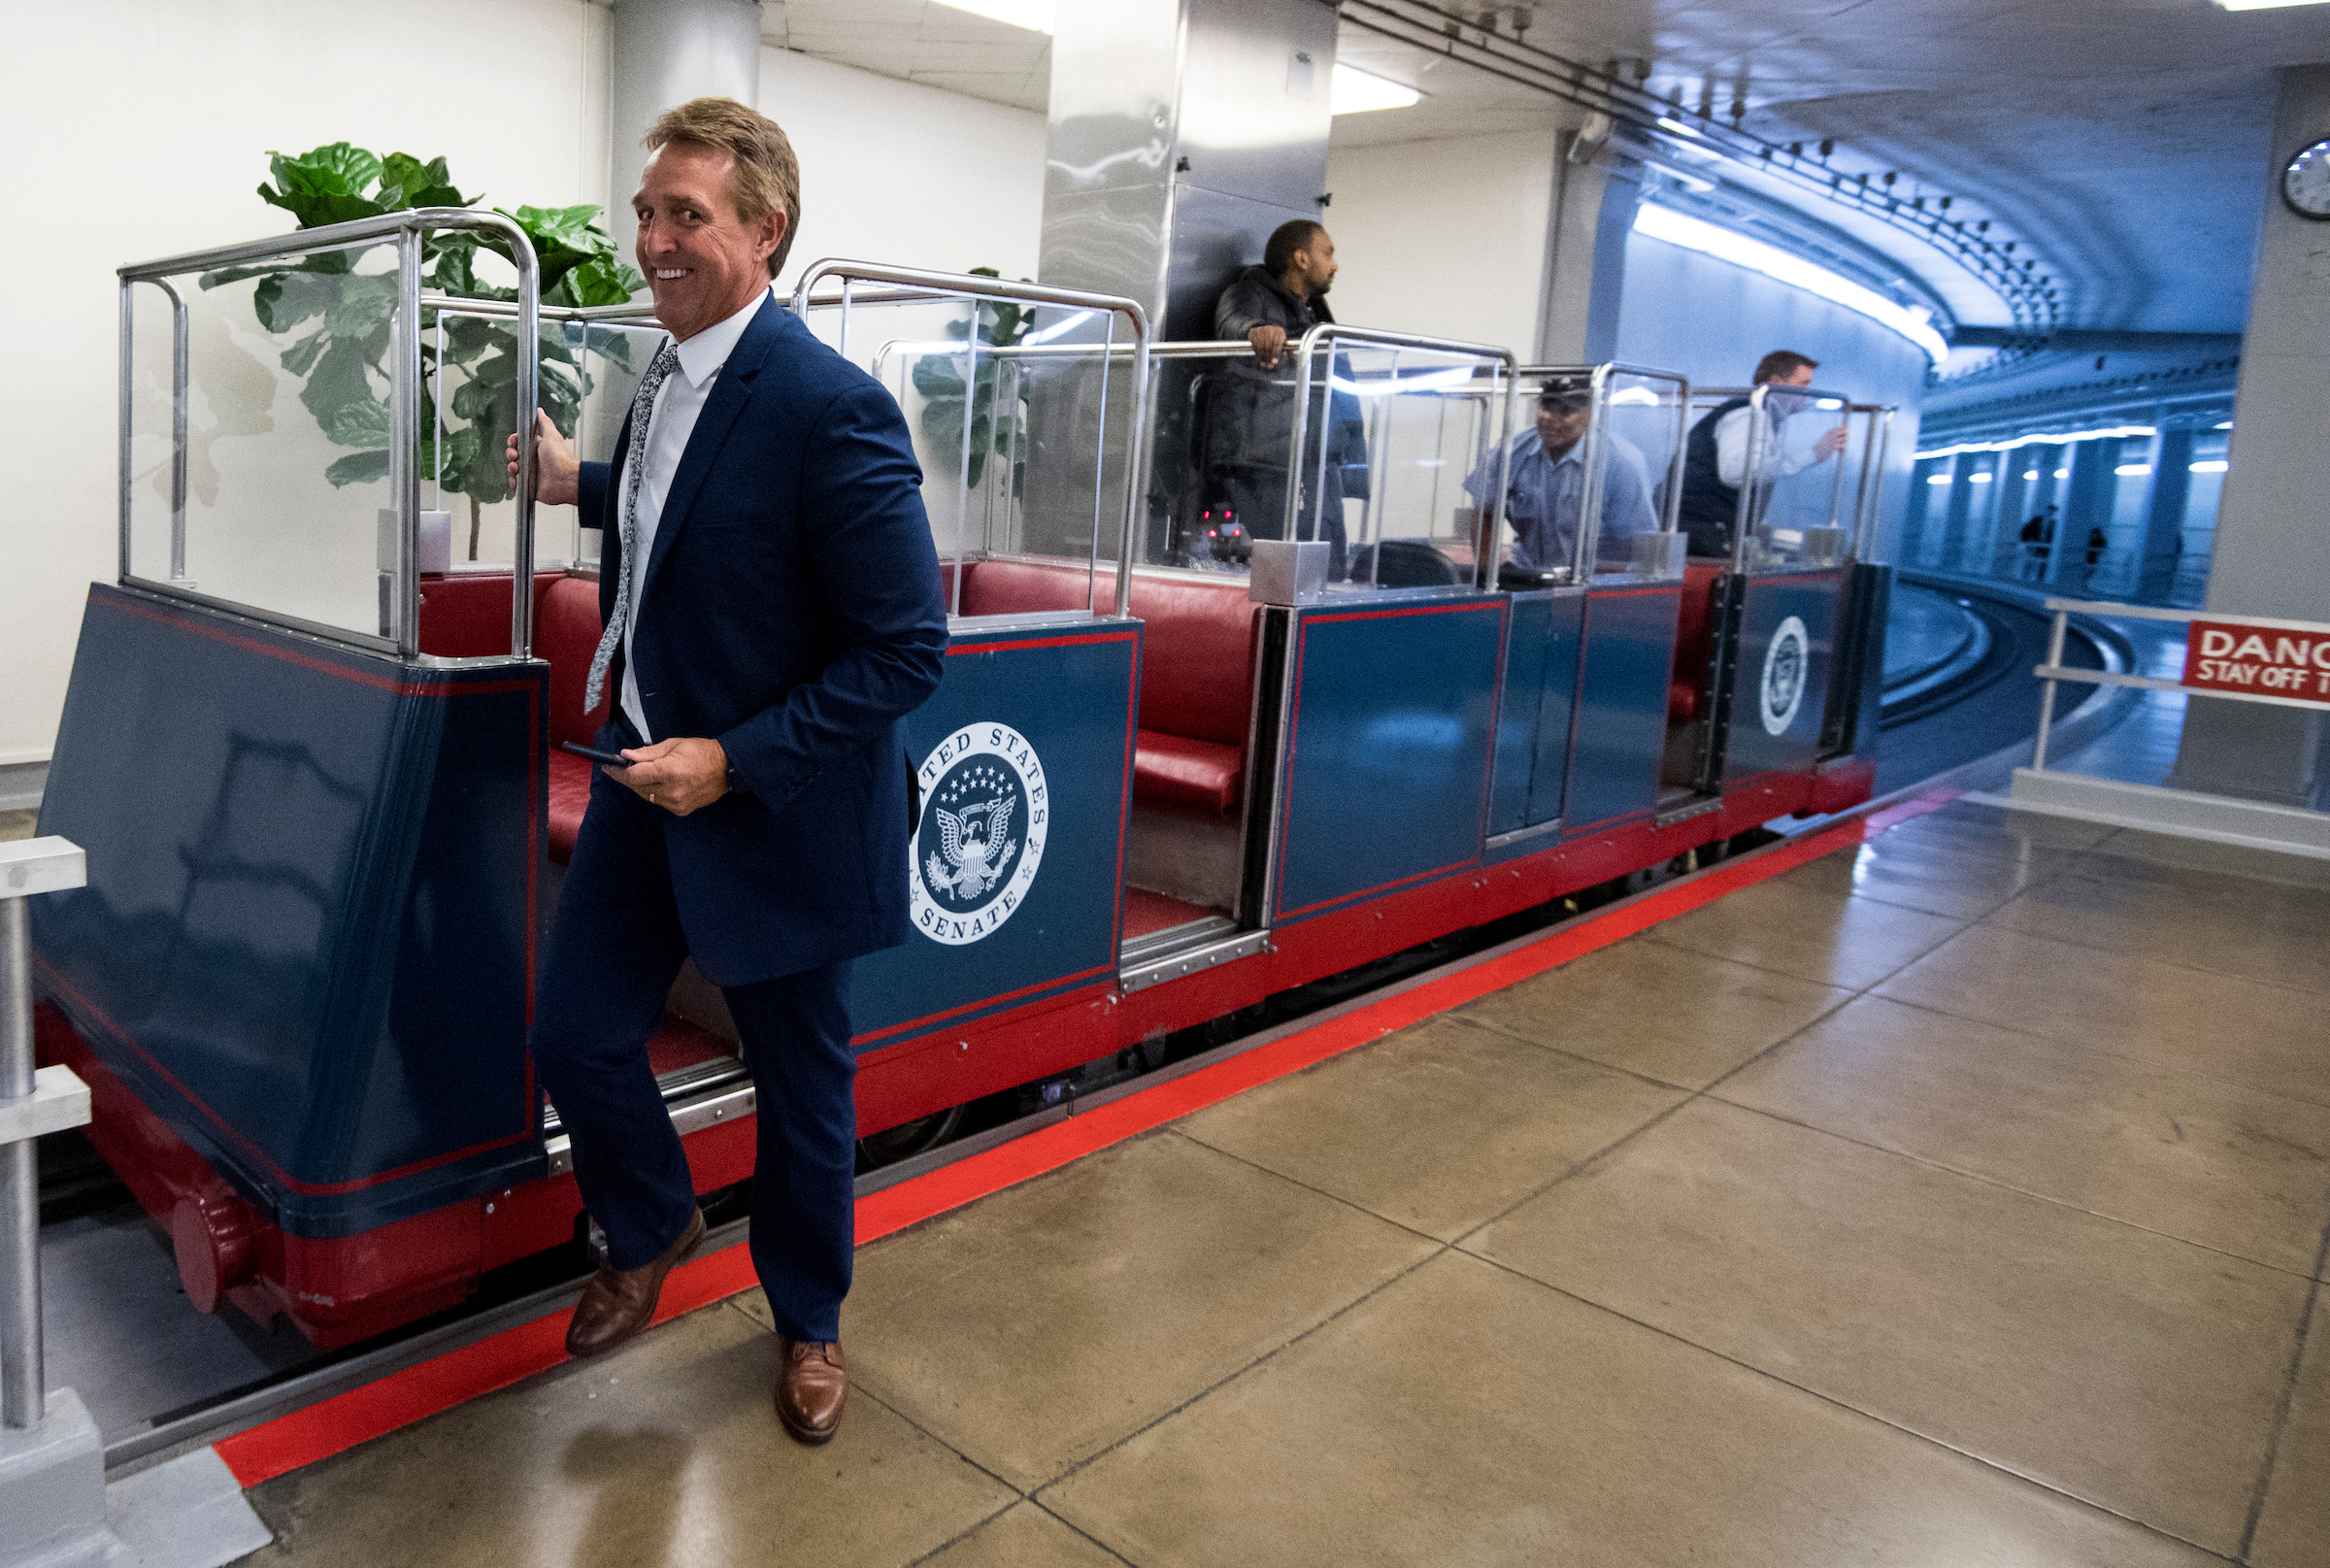 UNITED STATES - OCTOBER 17: Sen. Jeff Flake, R-Ariz., arrives in the Capitol for the Senate Republicans' policy lunch on Tuesday, Oct. 17, 2017. (Photo By Bill Clark/CQ Roll Call)